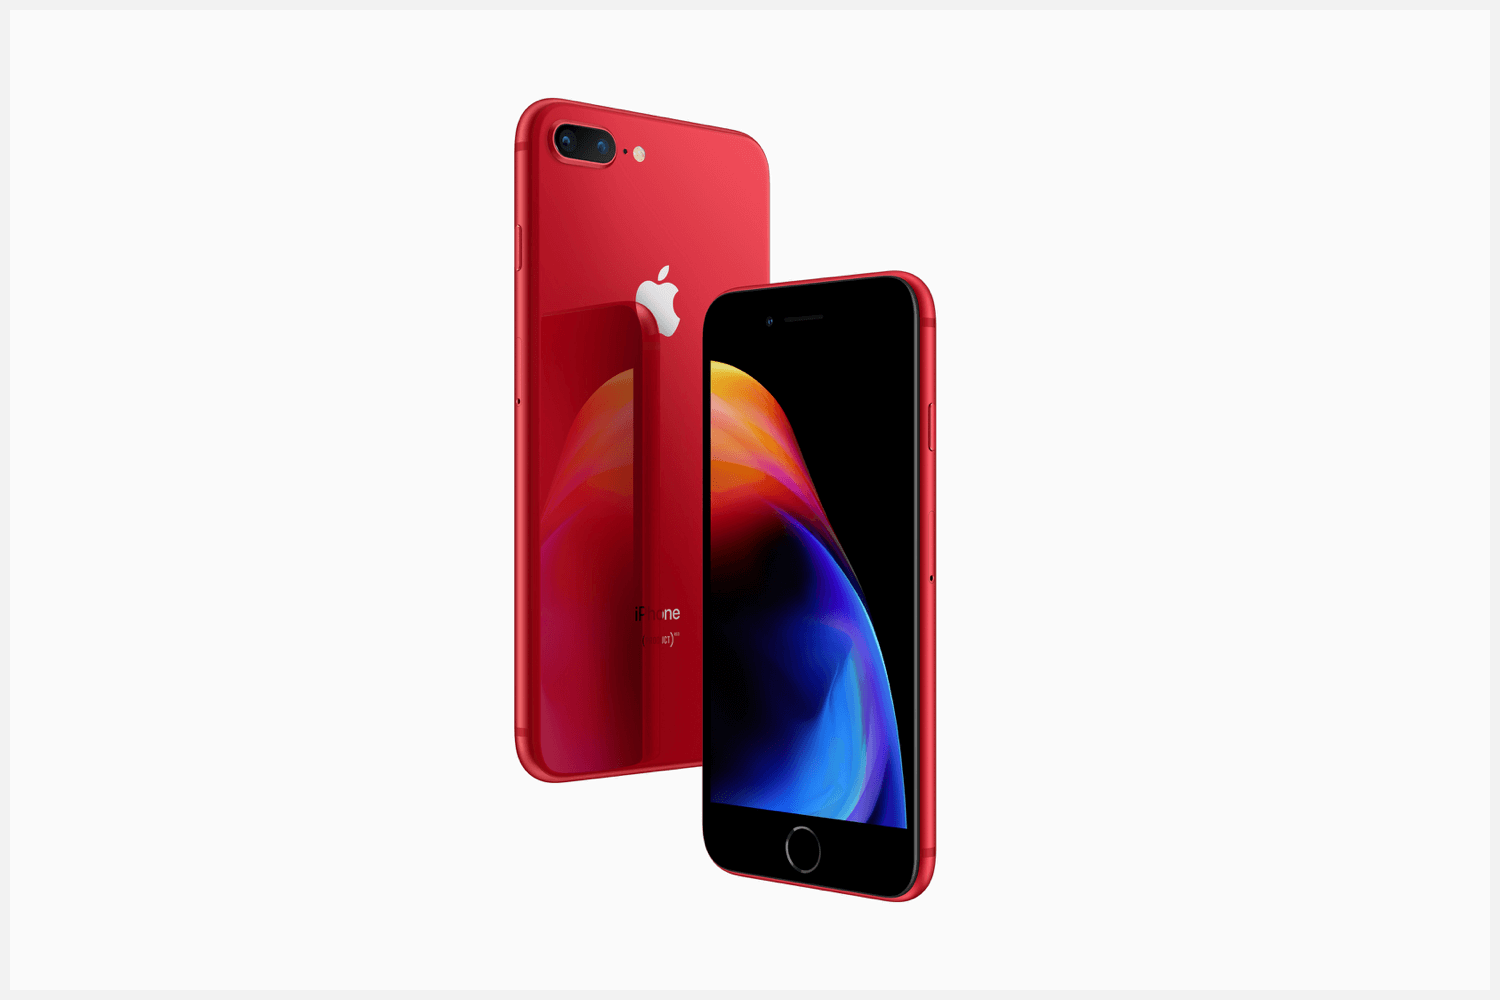 The front and back of Apple's Product(RED) iPhone.